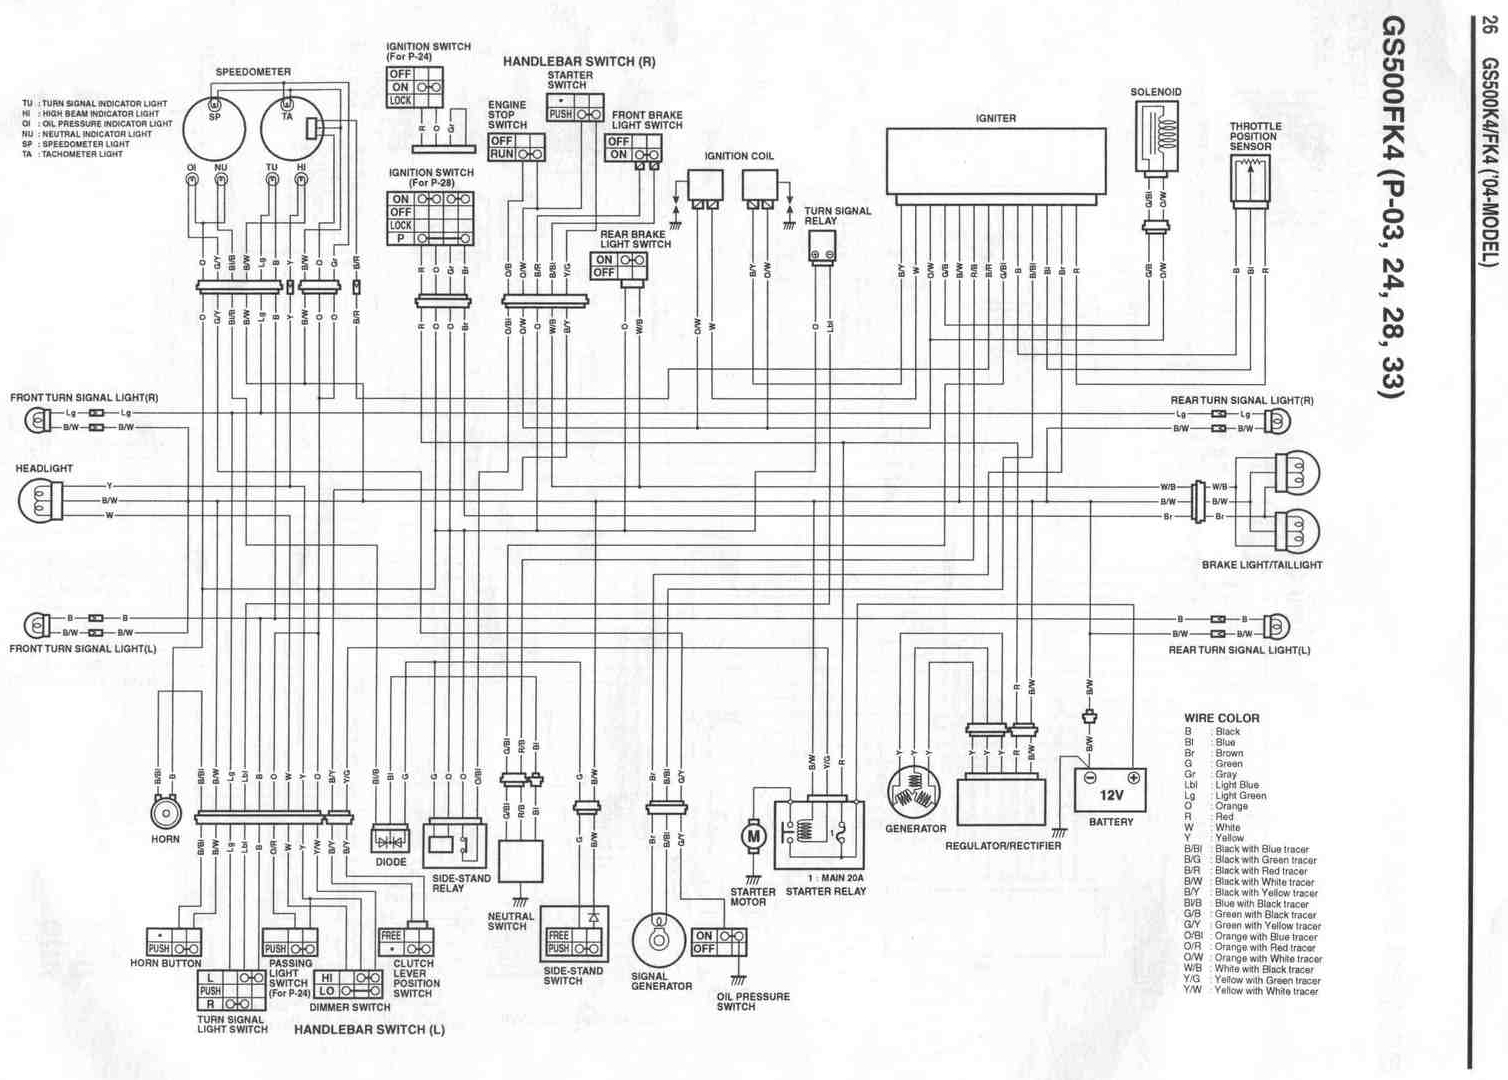 94 suzuki sidekick fuse box diagram wire diagram gs500f 06 #4